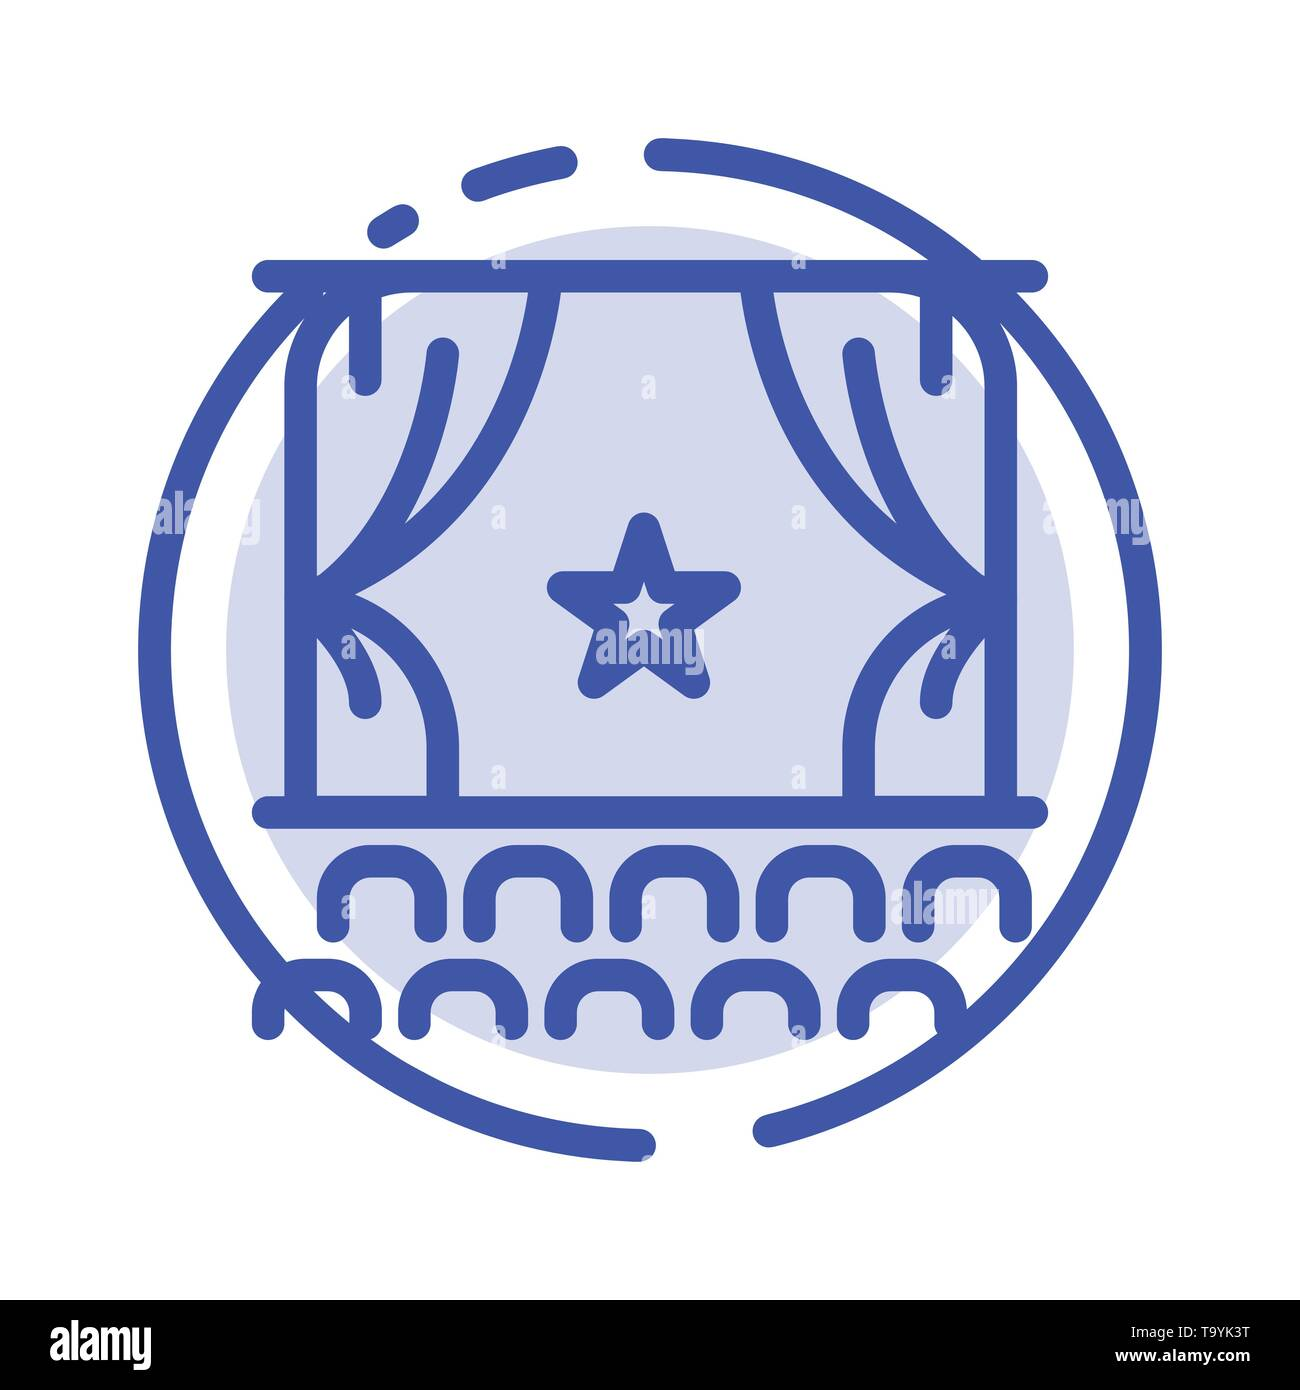 Cinema, Debut, Film, Performance, Premiere Blue Dotted Line Line Icon - Stock Image